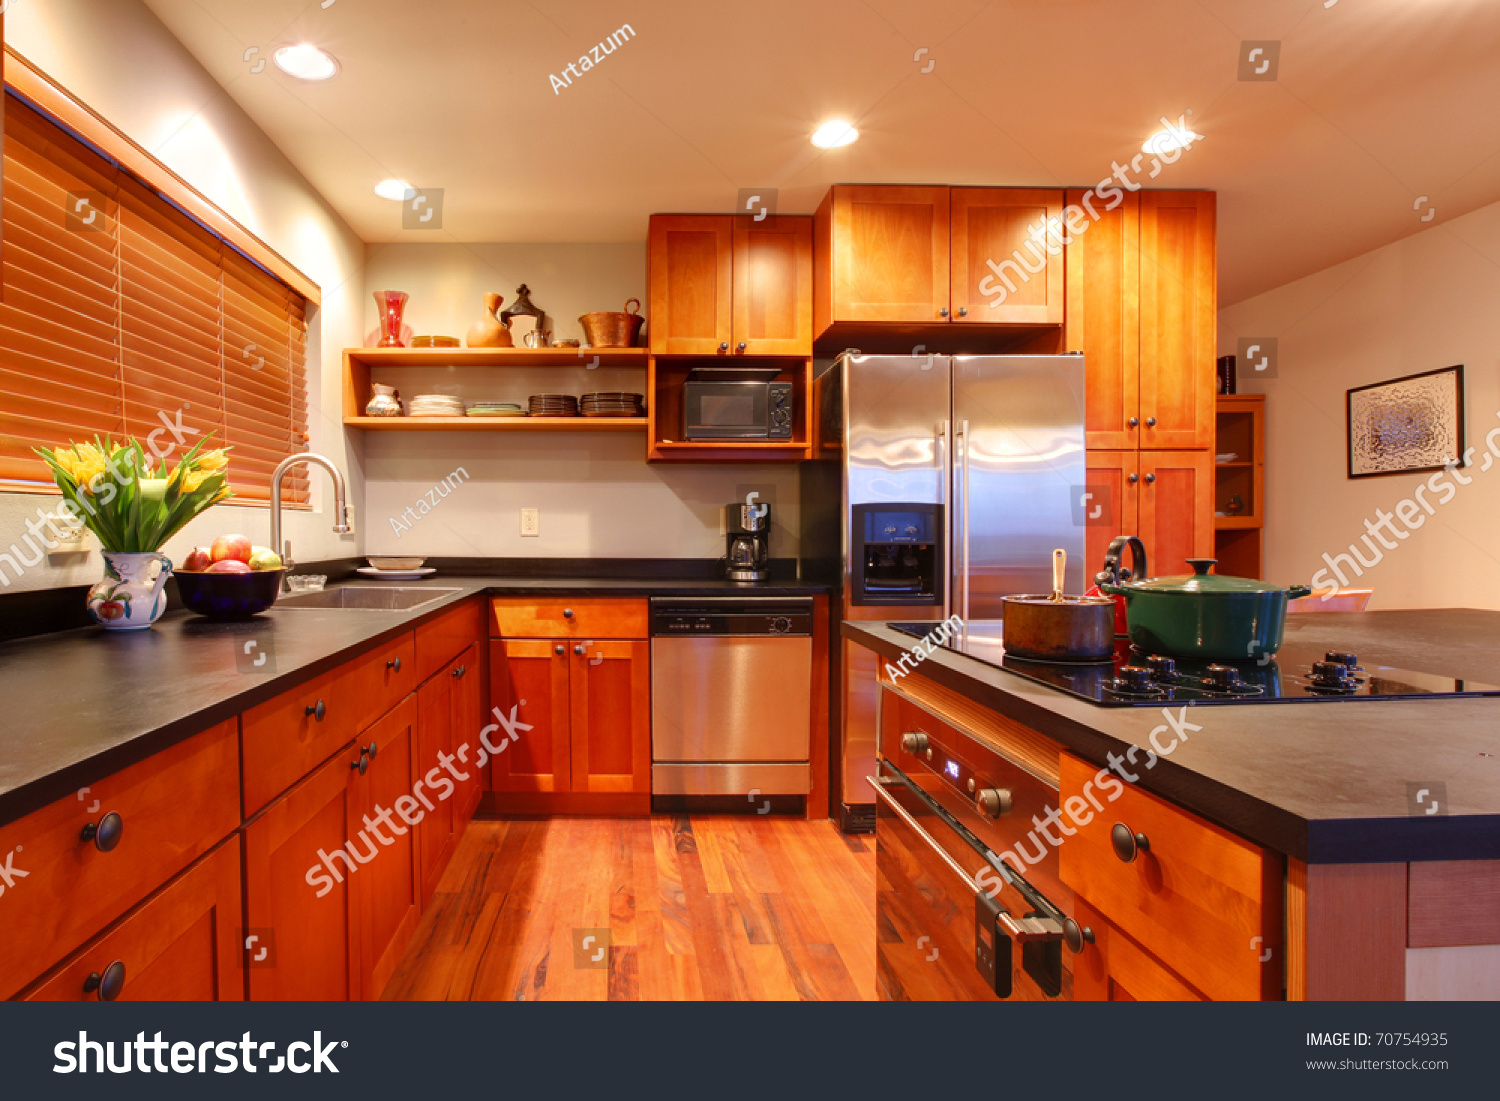 Really nice kitchen cherry wood hardwood stock photo for Really nice kitchen designs